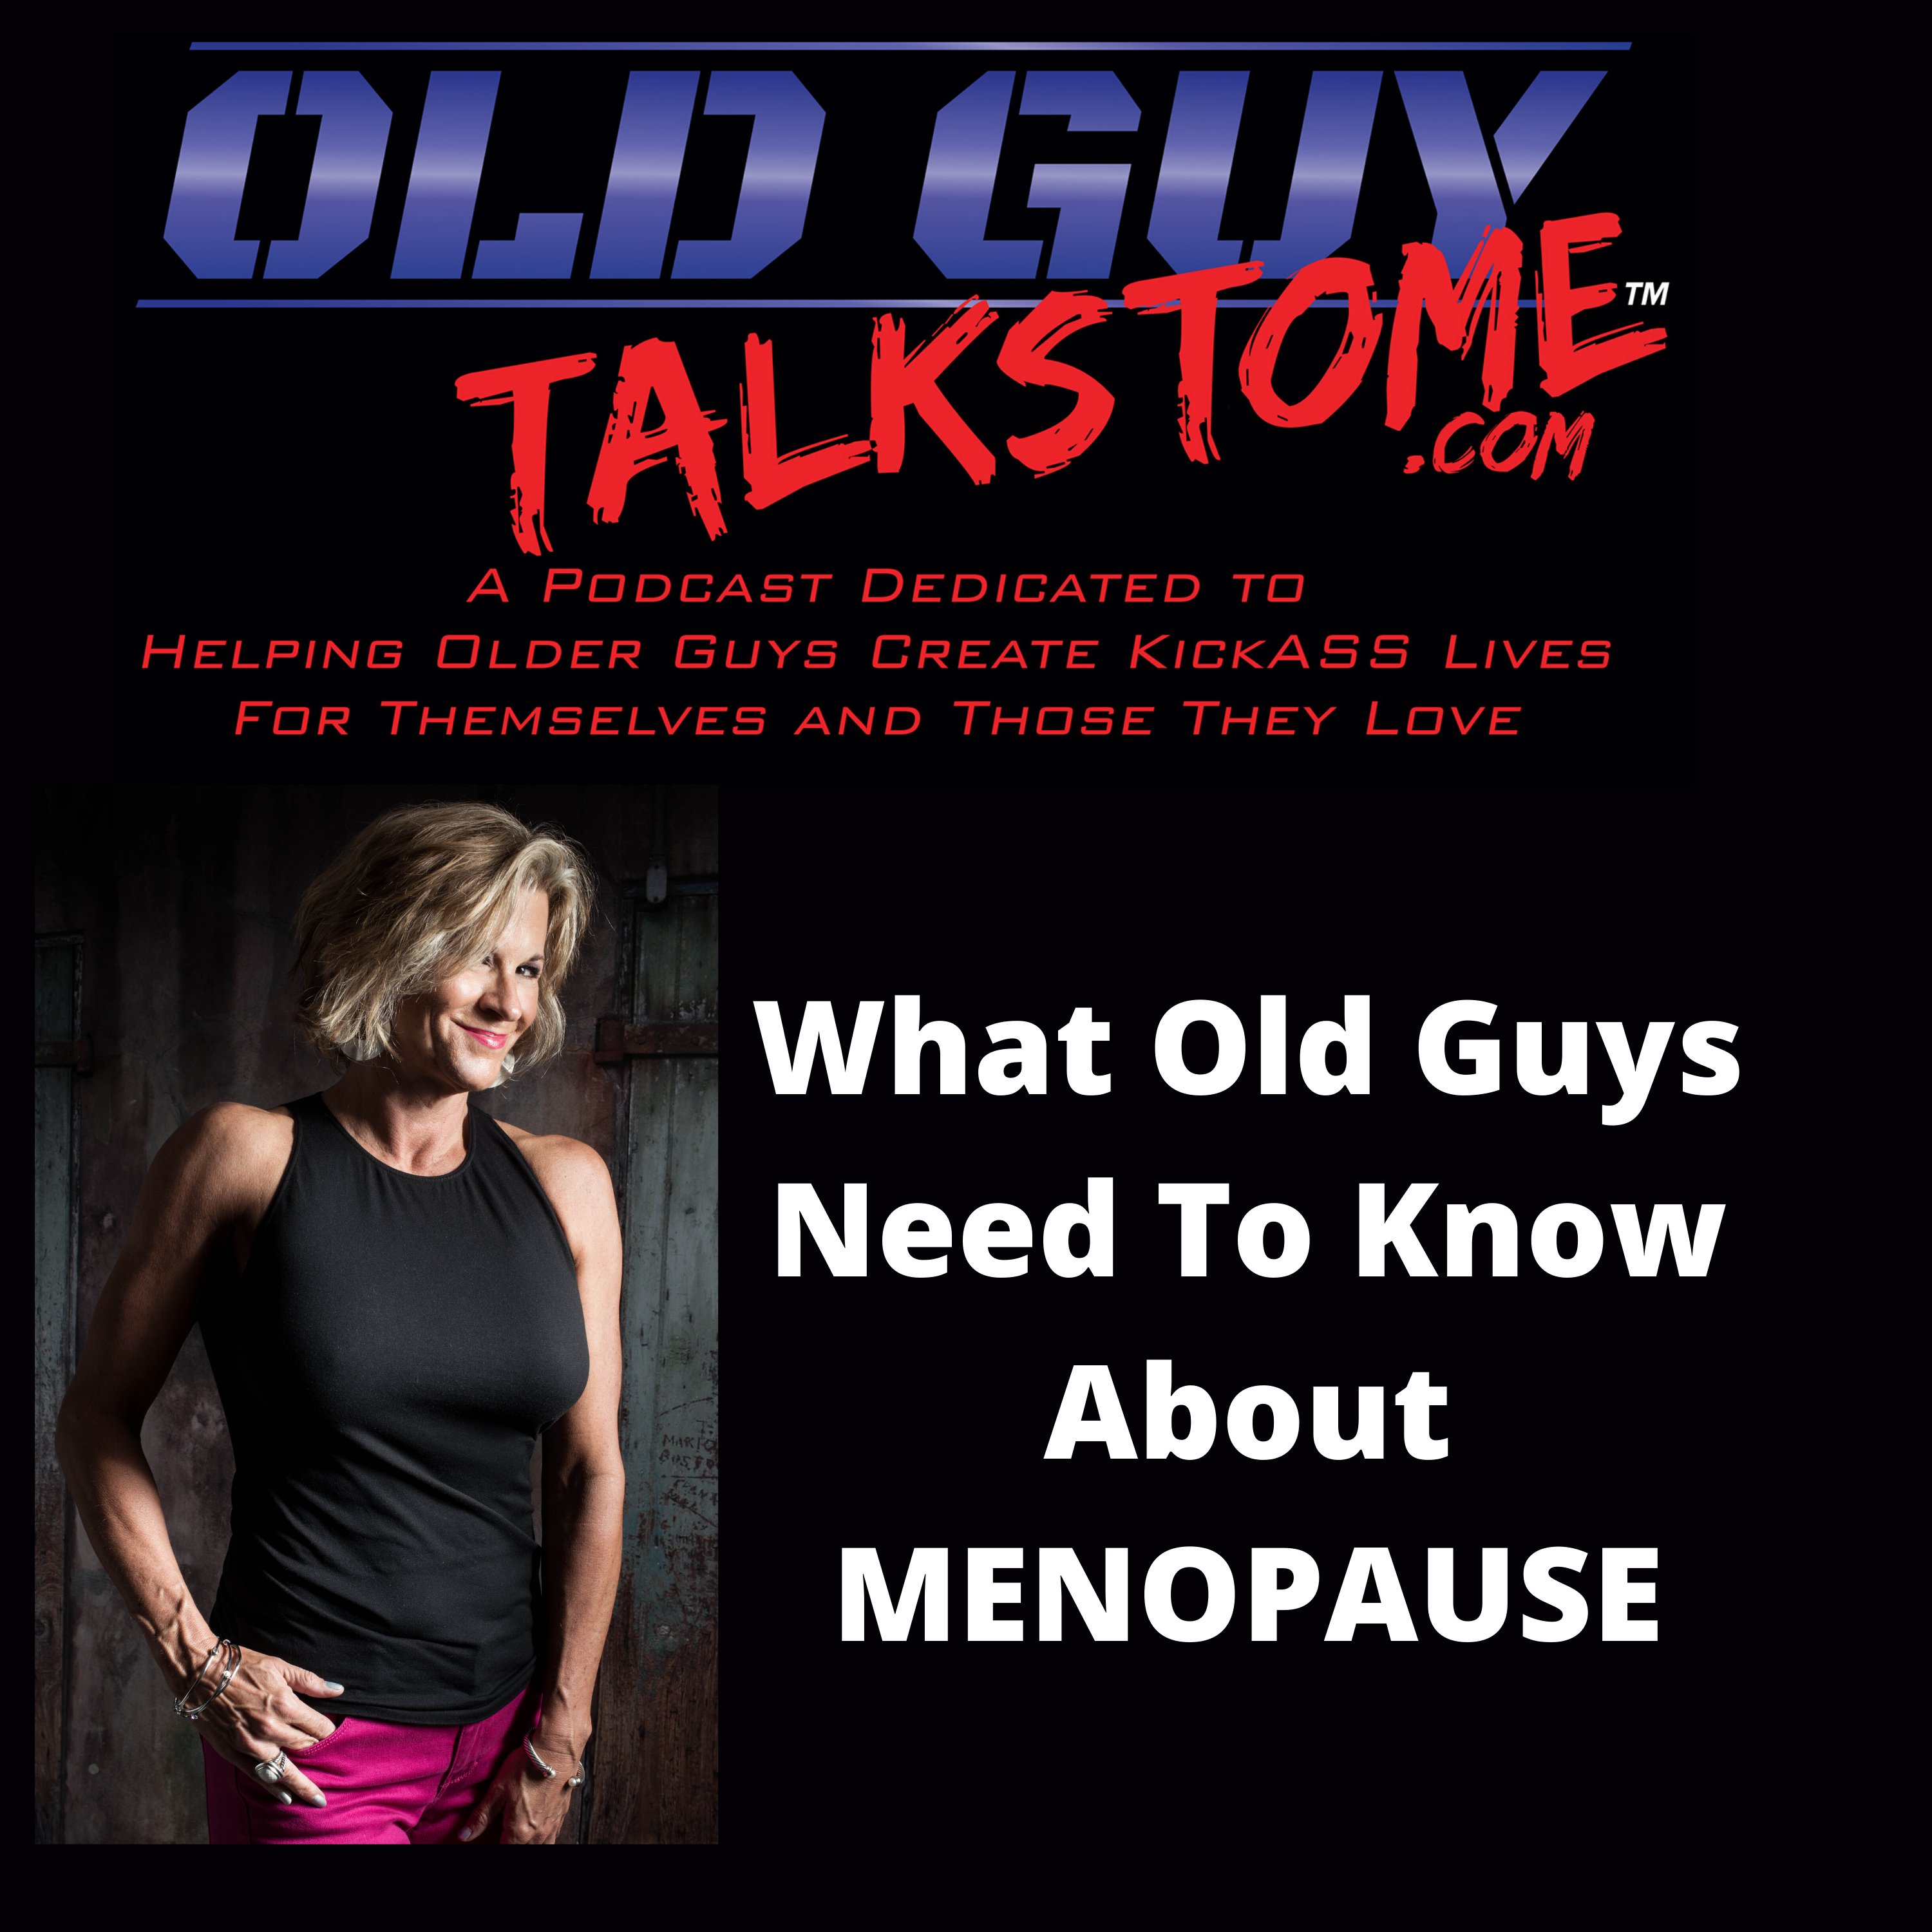 OldGuyTalksToMe - What Old Guys Need To Know About MENOPAUSE  And WOMEN TOO